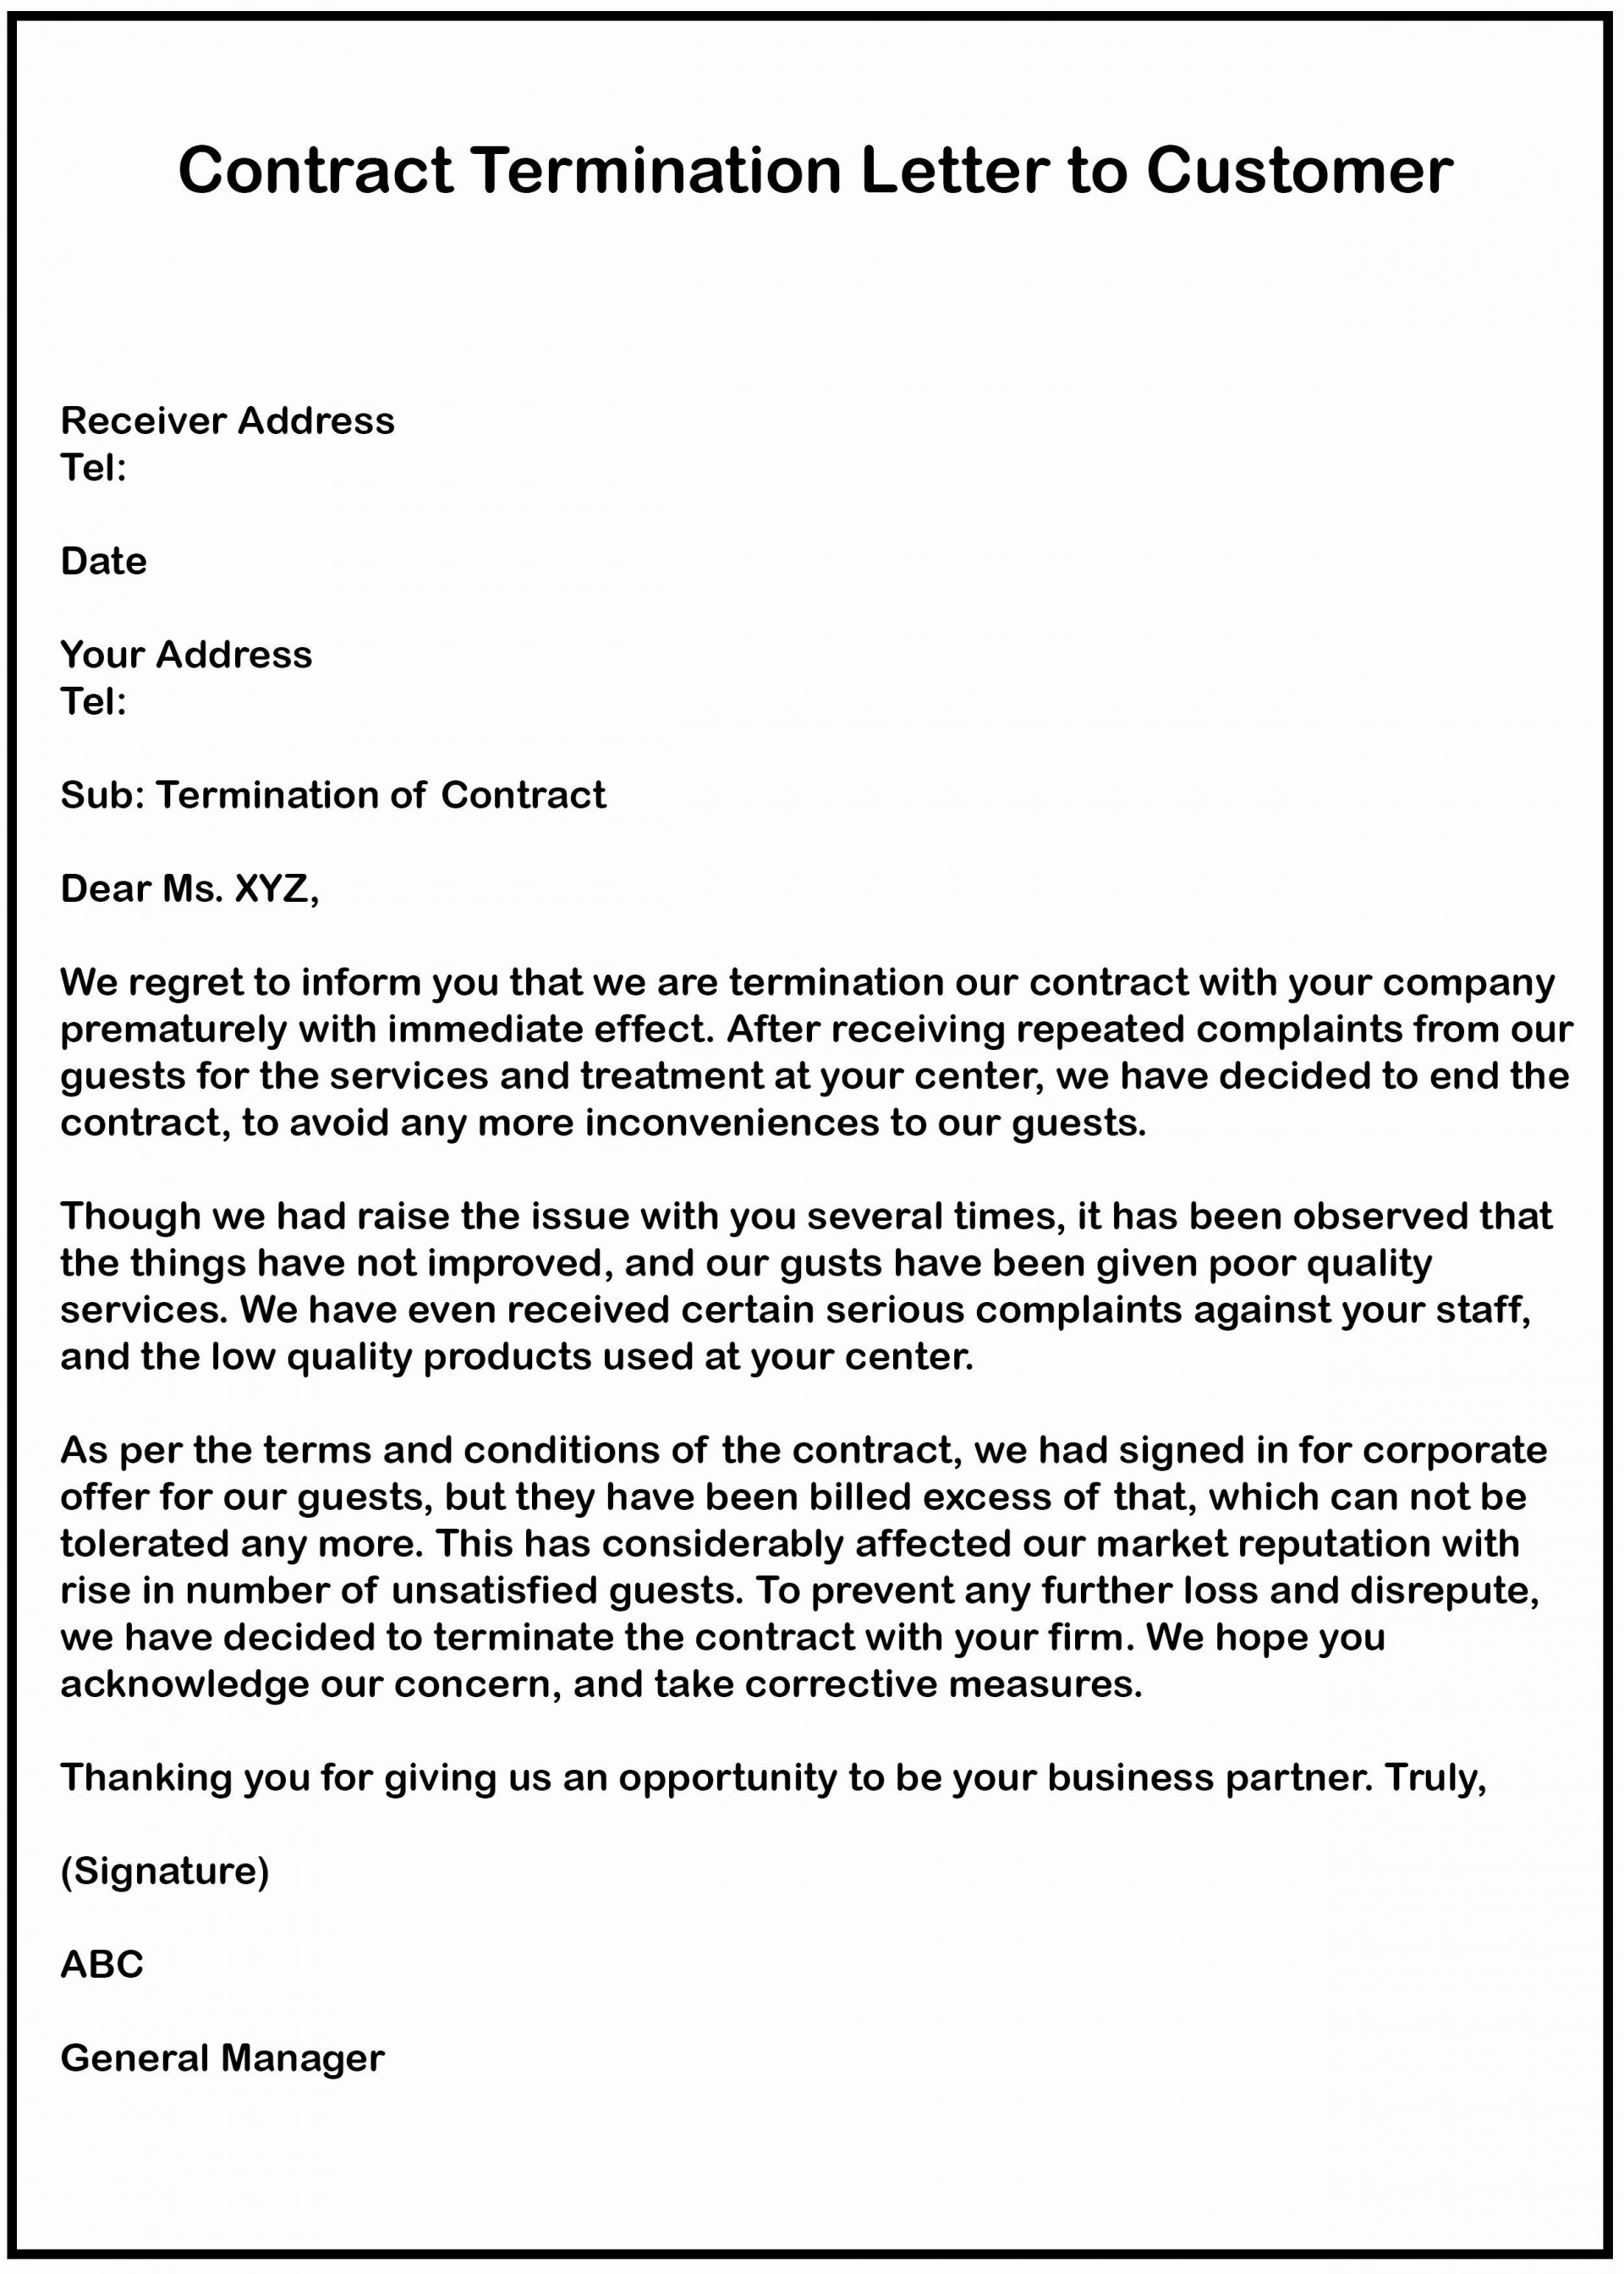 Termination Of Contract Letter Example from www.addictionary.org